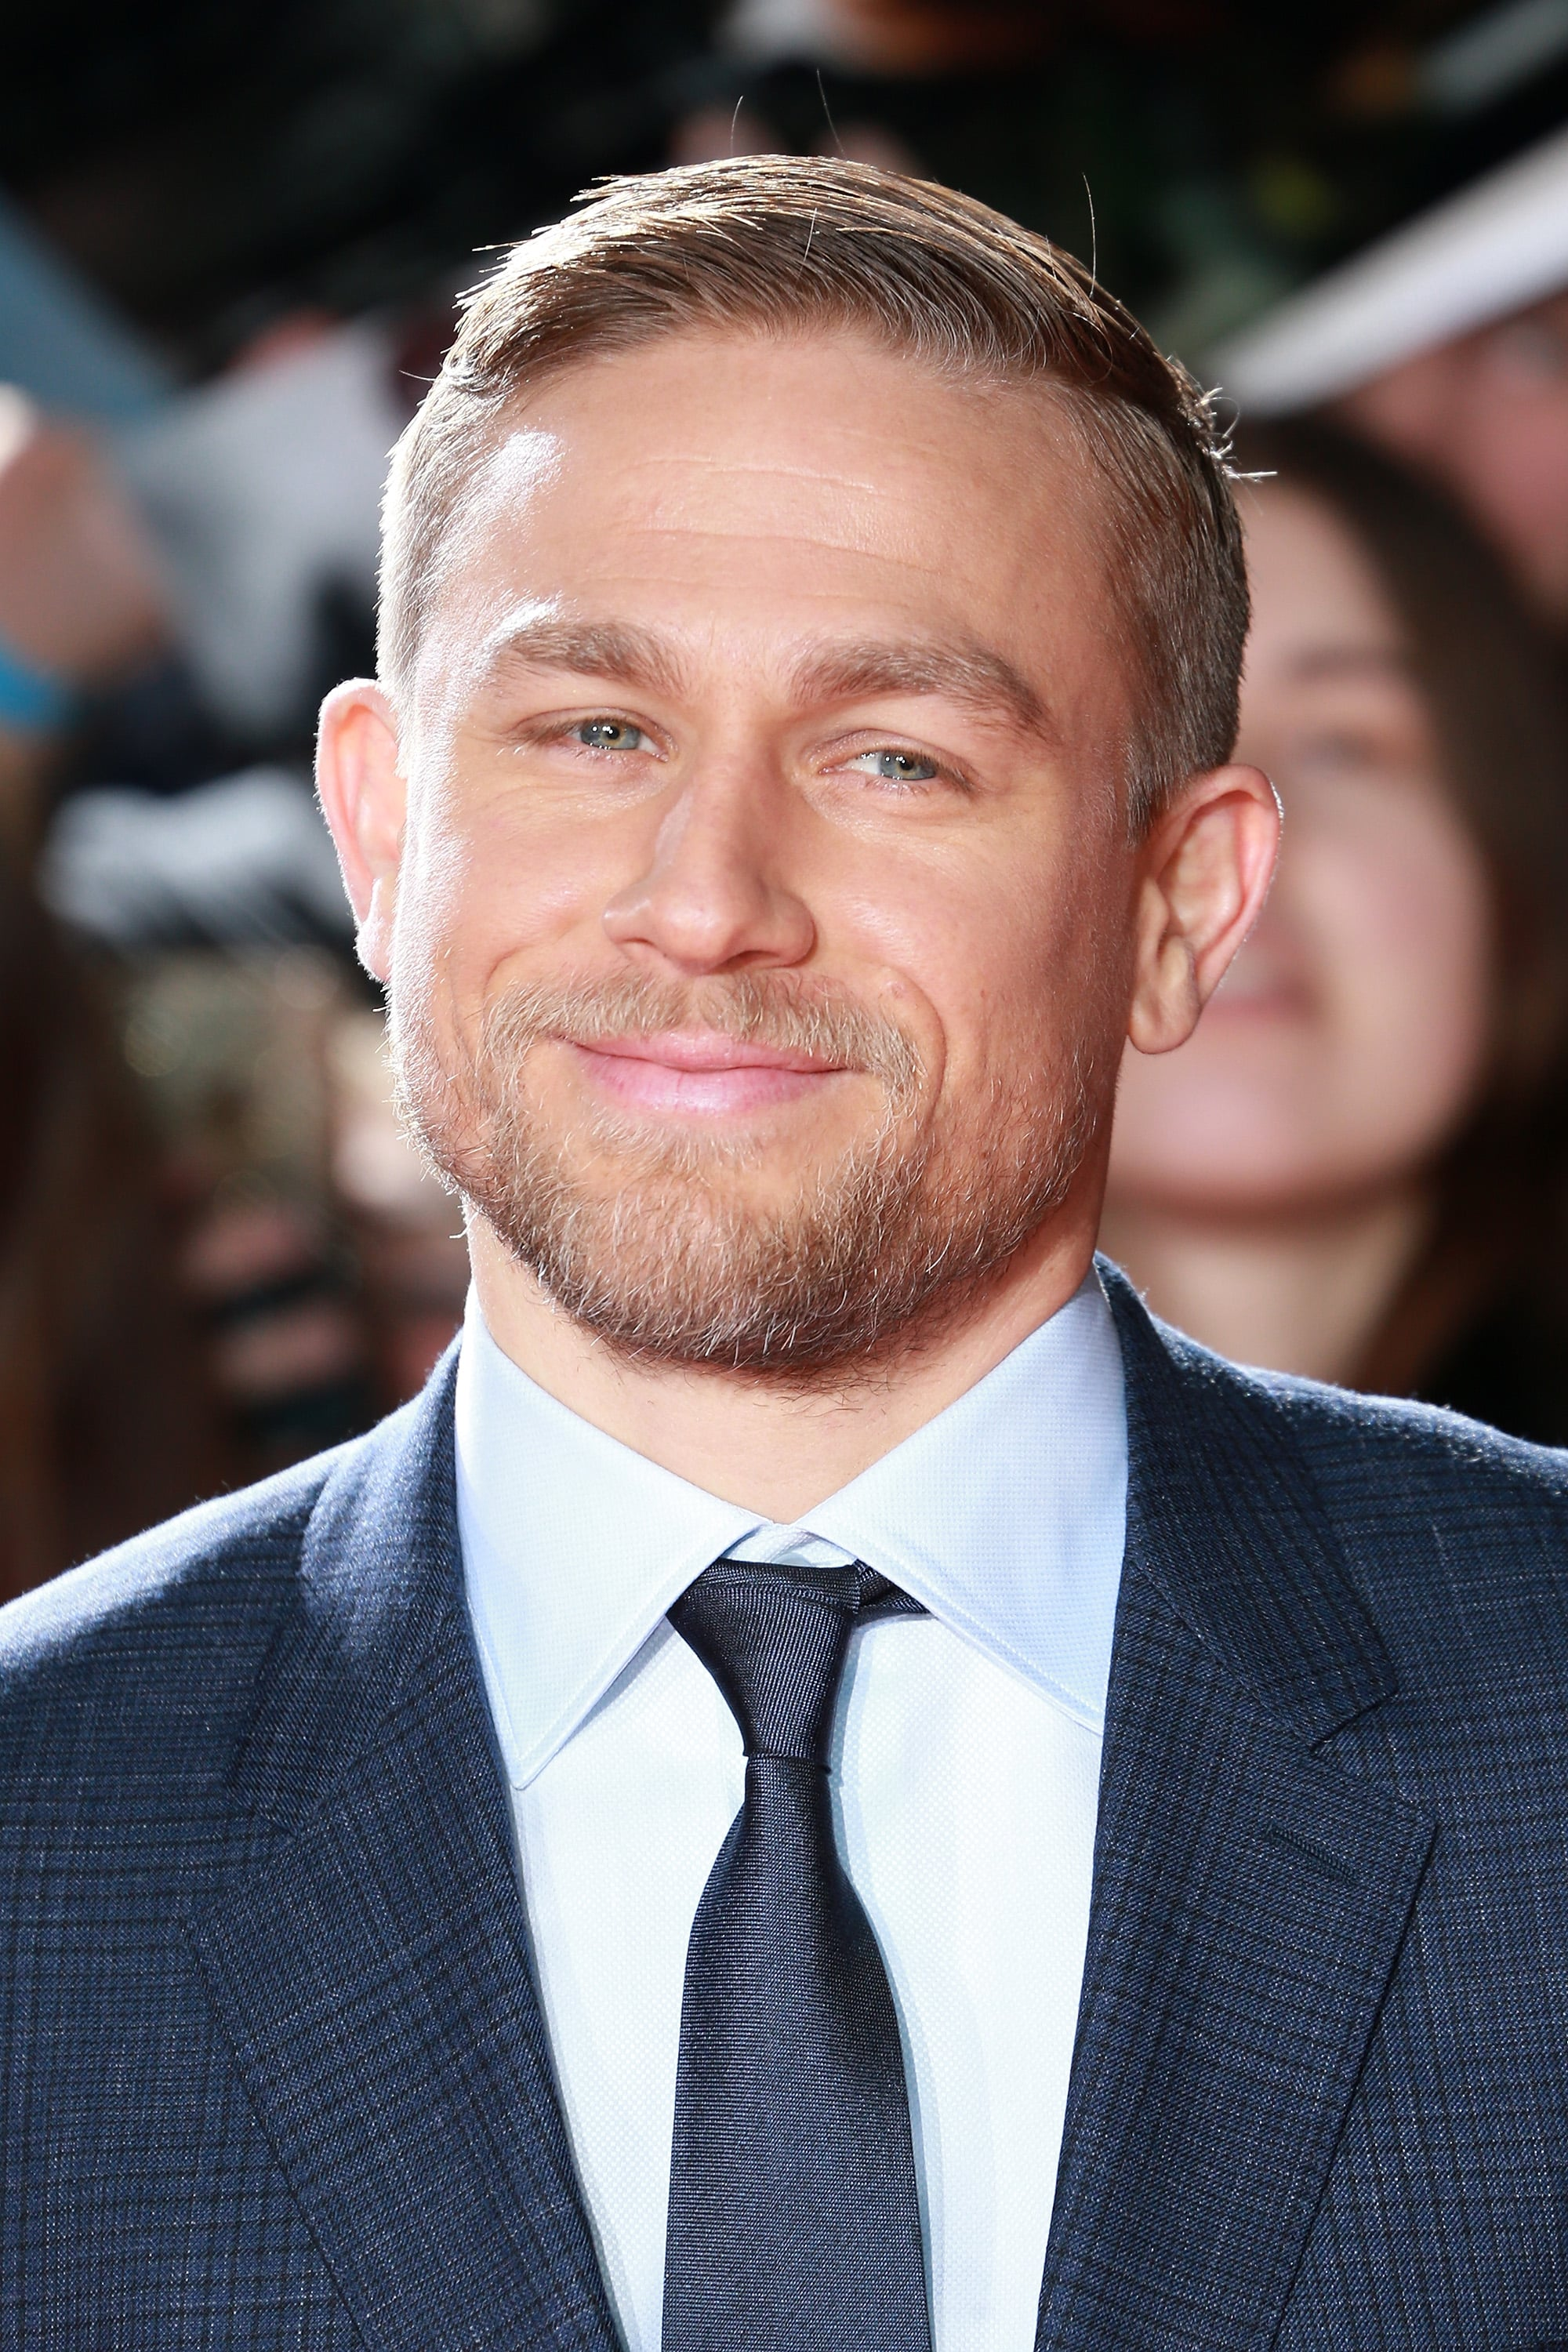 Charlie Hunnam Quotes Men Health April